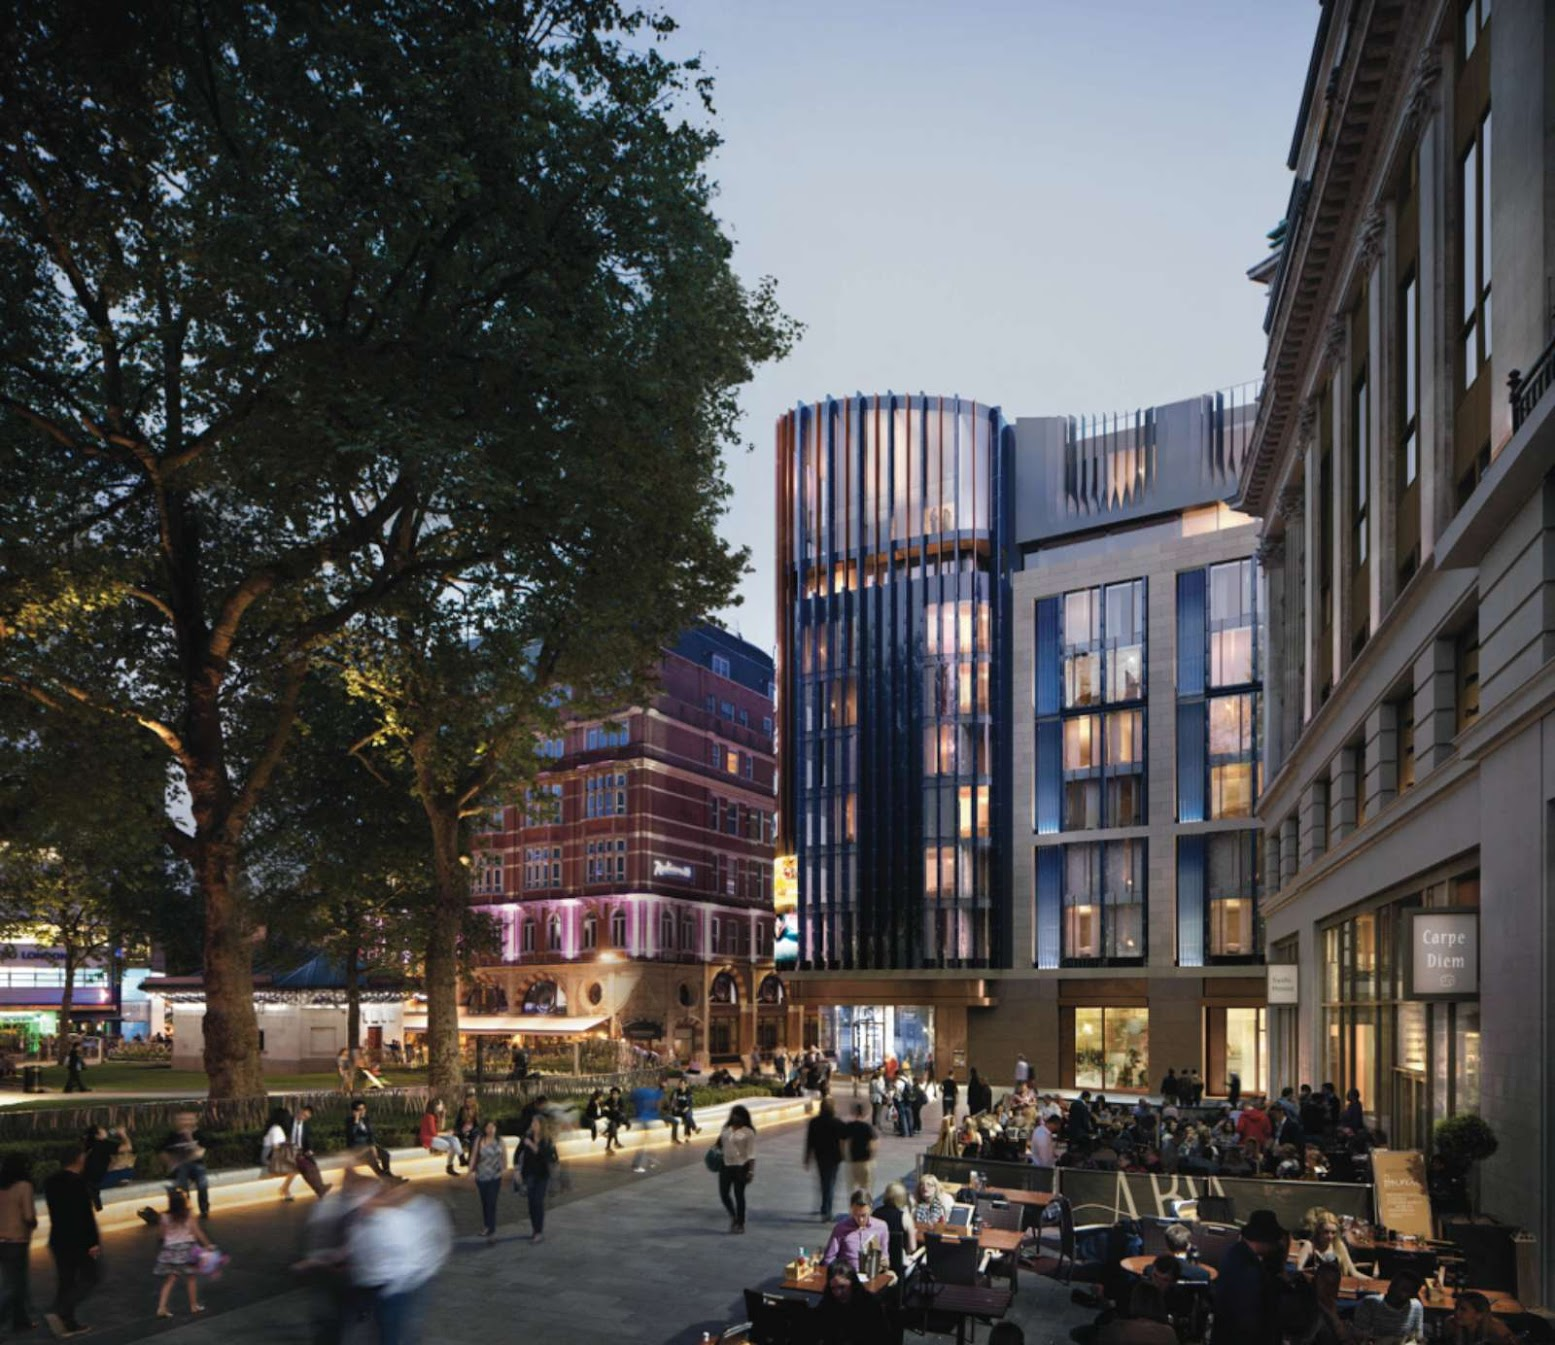 Londra, Regno Unito: [HOTEL PLANS IN LONDON'S LEICESTER SQUARE BY WOODS BAGOT]